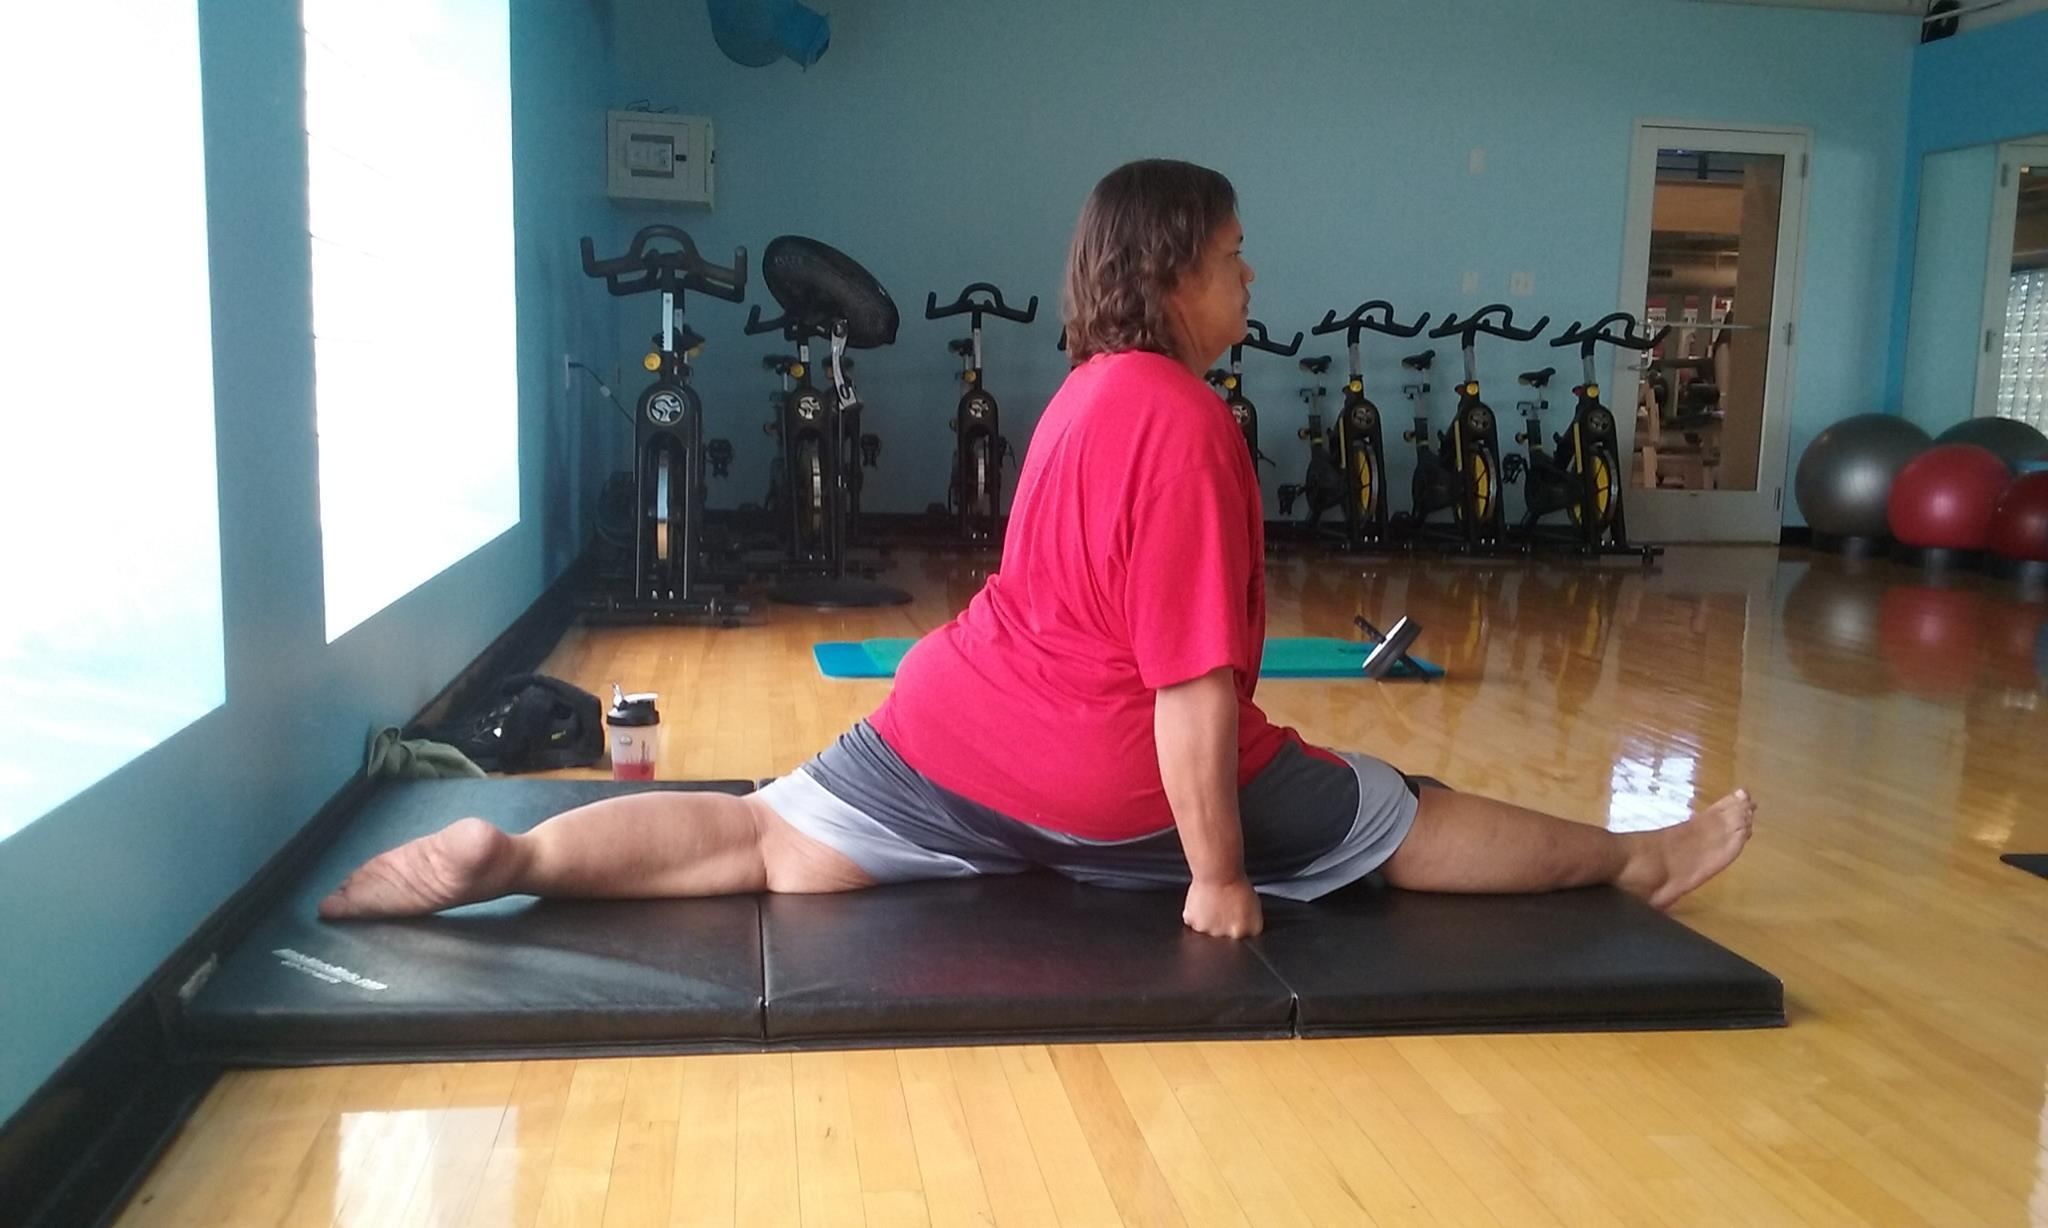 Yoga May Be The Medicine Aboriginal Communities Have Been Looking For